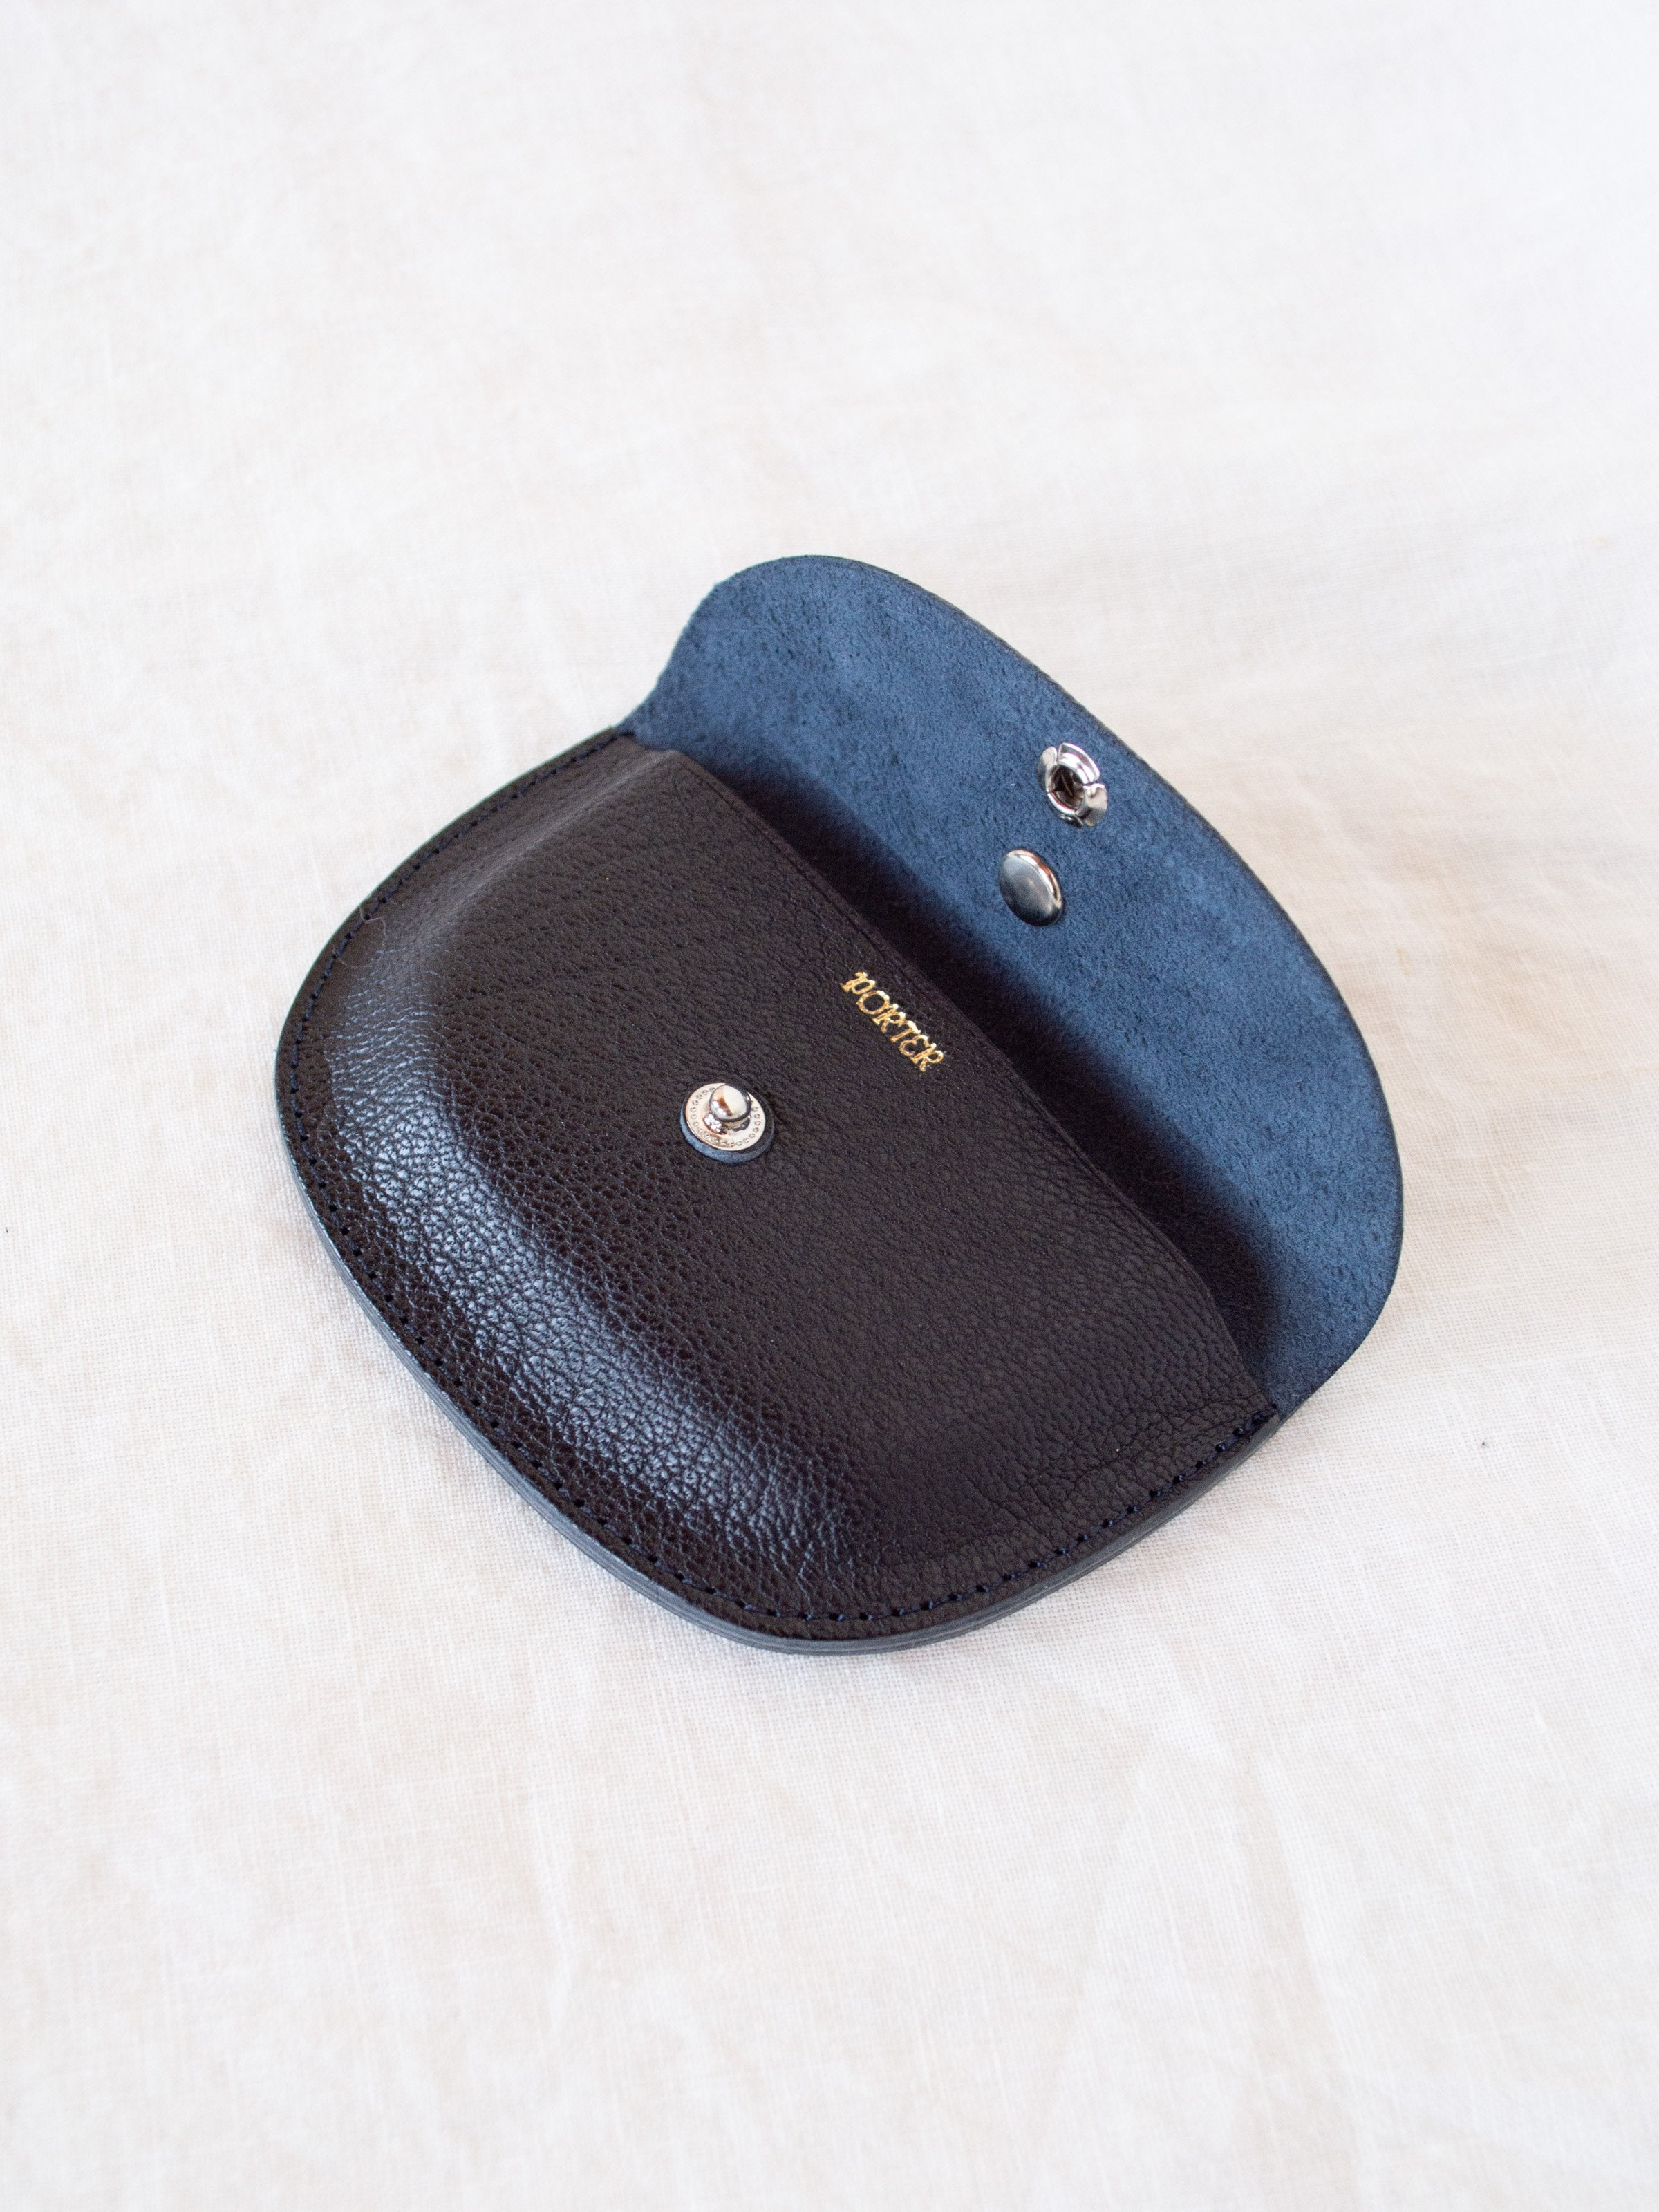 Namu Shop - Kaptain Sunshine Leather Round Wallet - Black